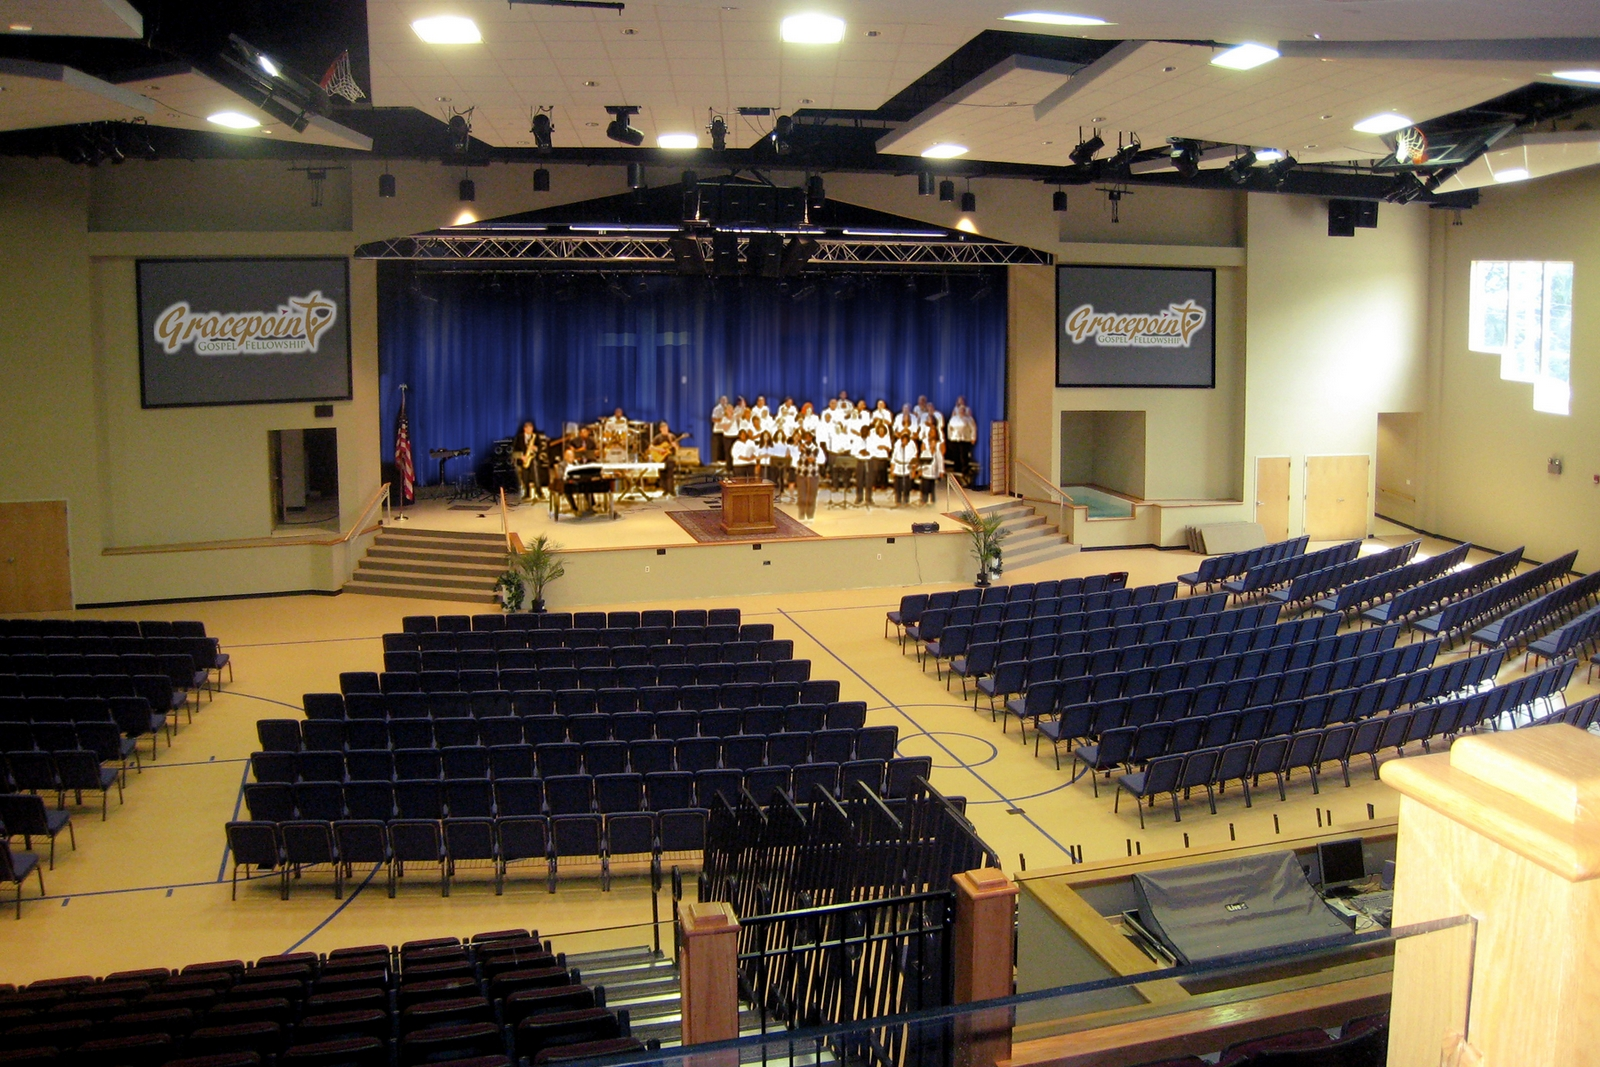 gracepoint gospel fellowship, new city, ny / 1,100 seats